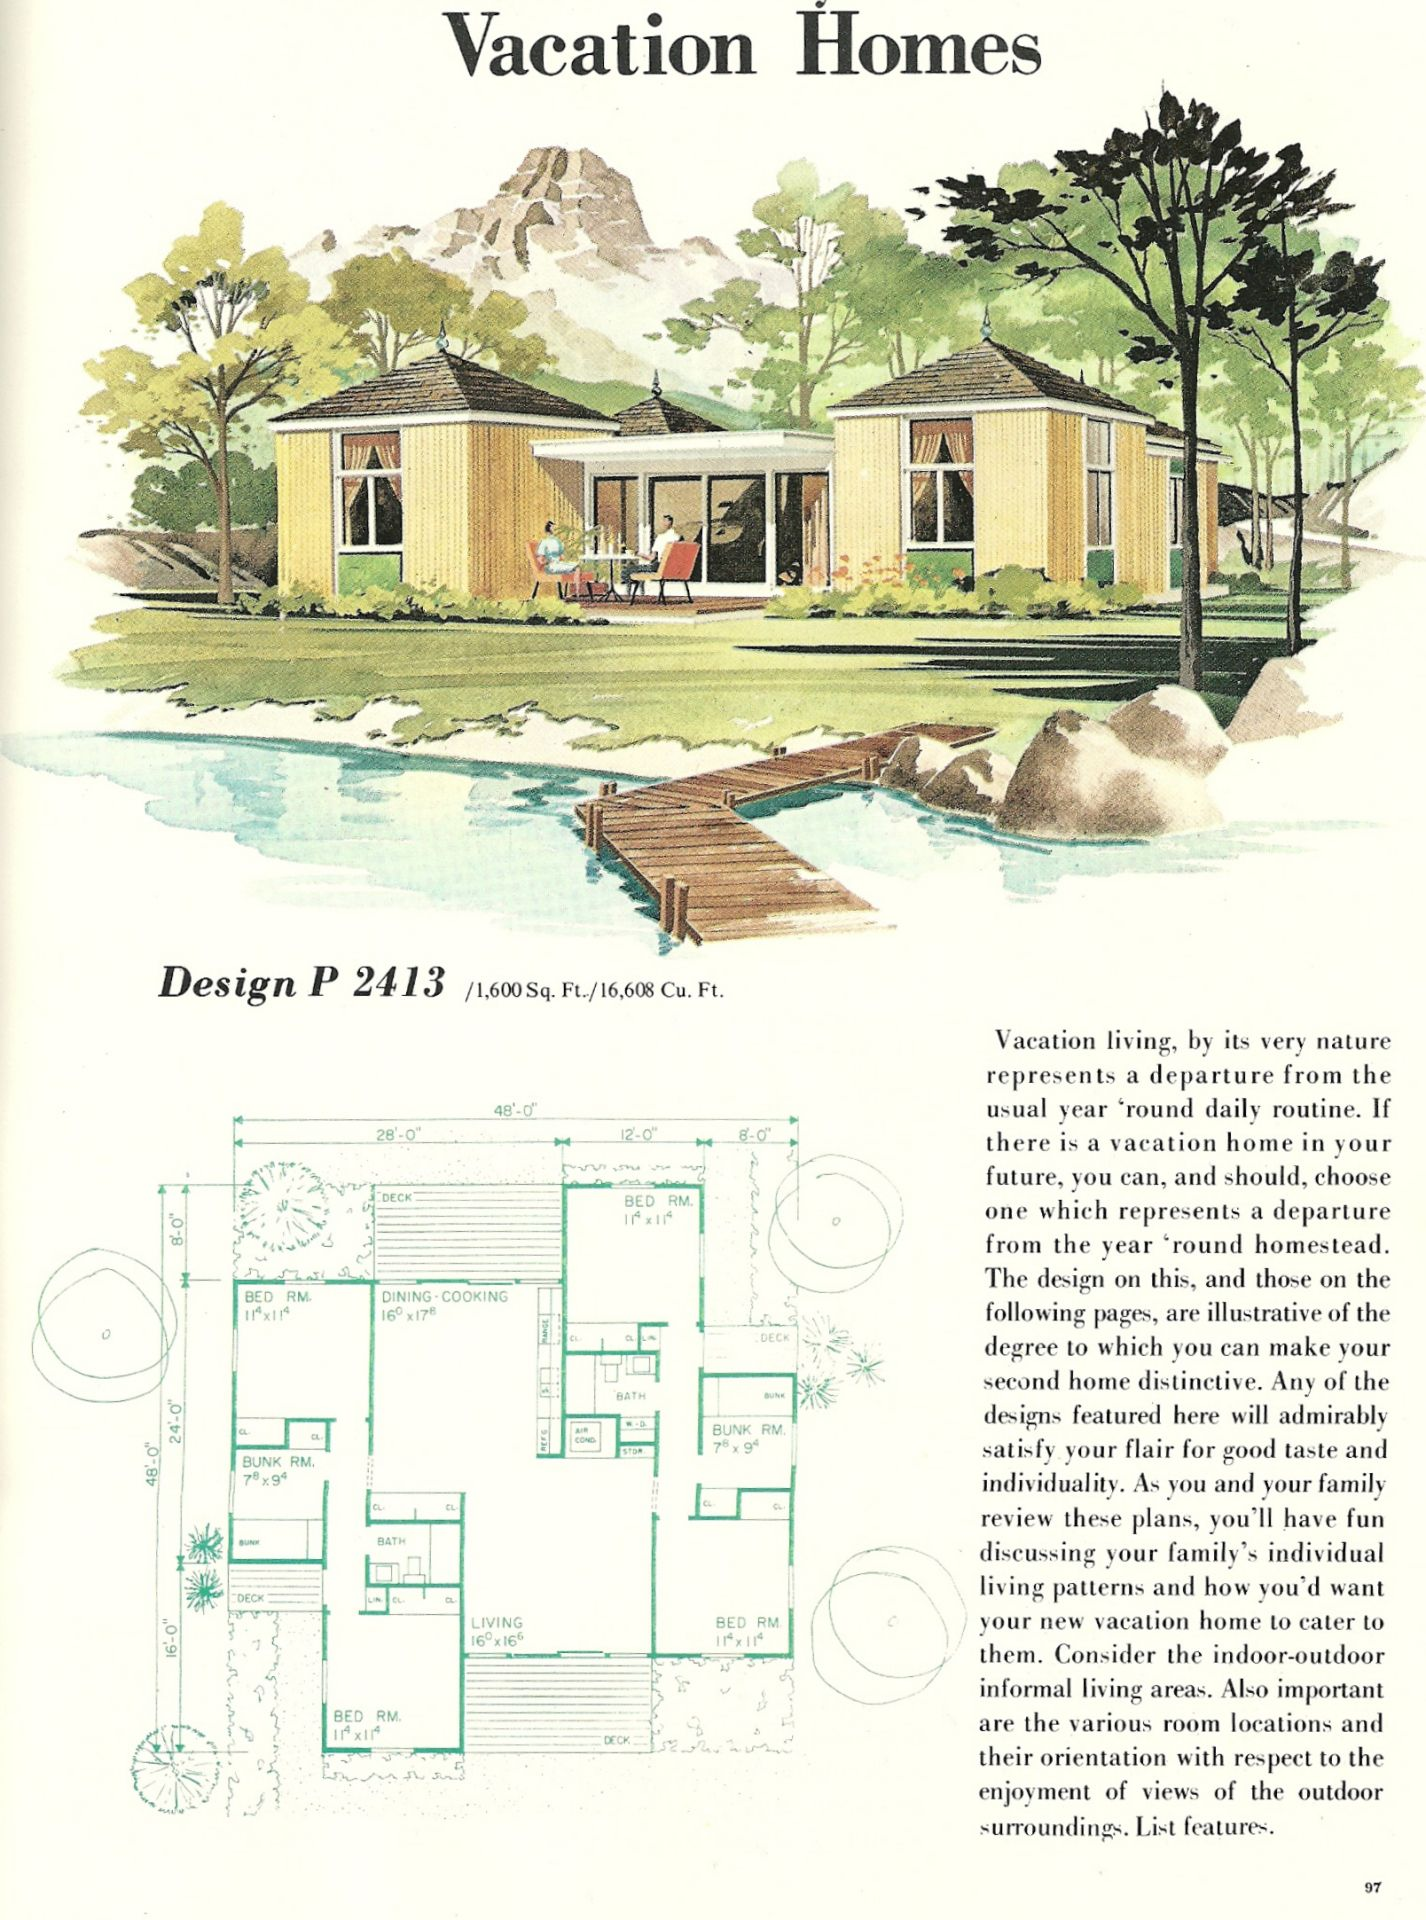 Vintage Vacation Home Plans 2413 Vacation House Plans Cottage Floor Plans Cottage Design Plans